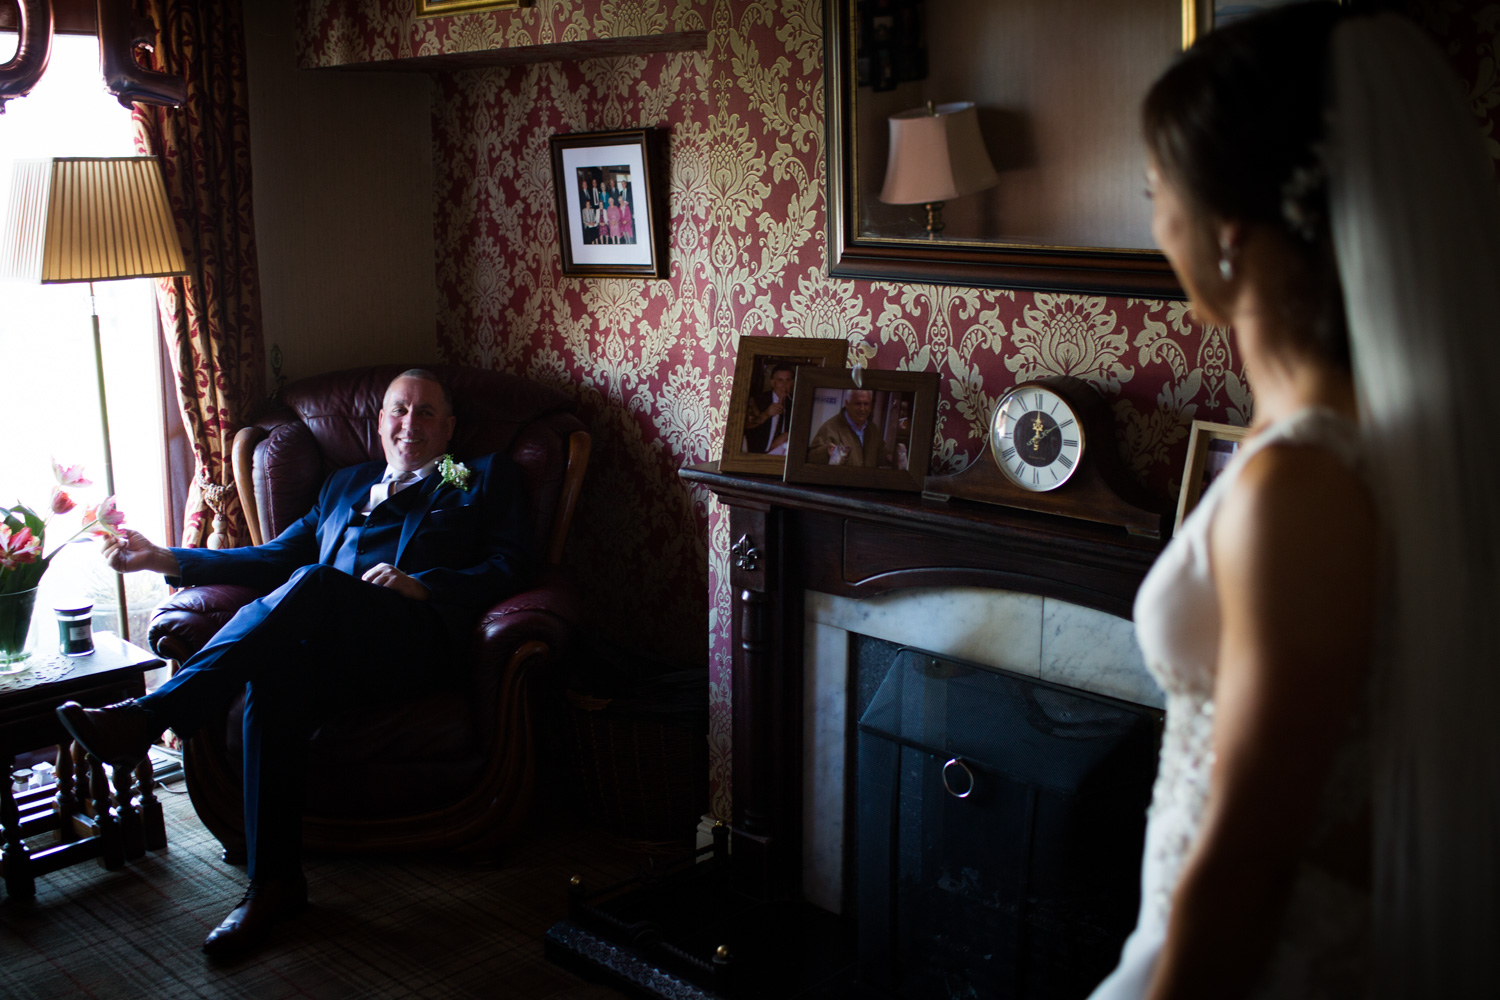 Mark_Barnes_Northern_Ireland_wedding_photographer_redcastle_hotel_Donegal_Wedding_photography_Donegal_wedding_photographer-11.jpg